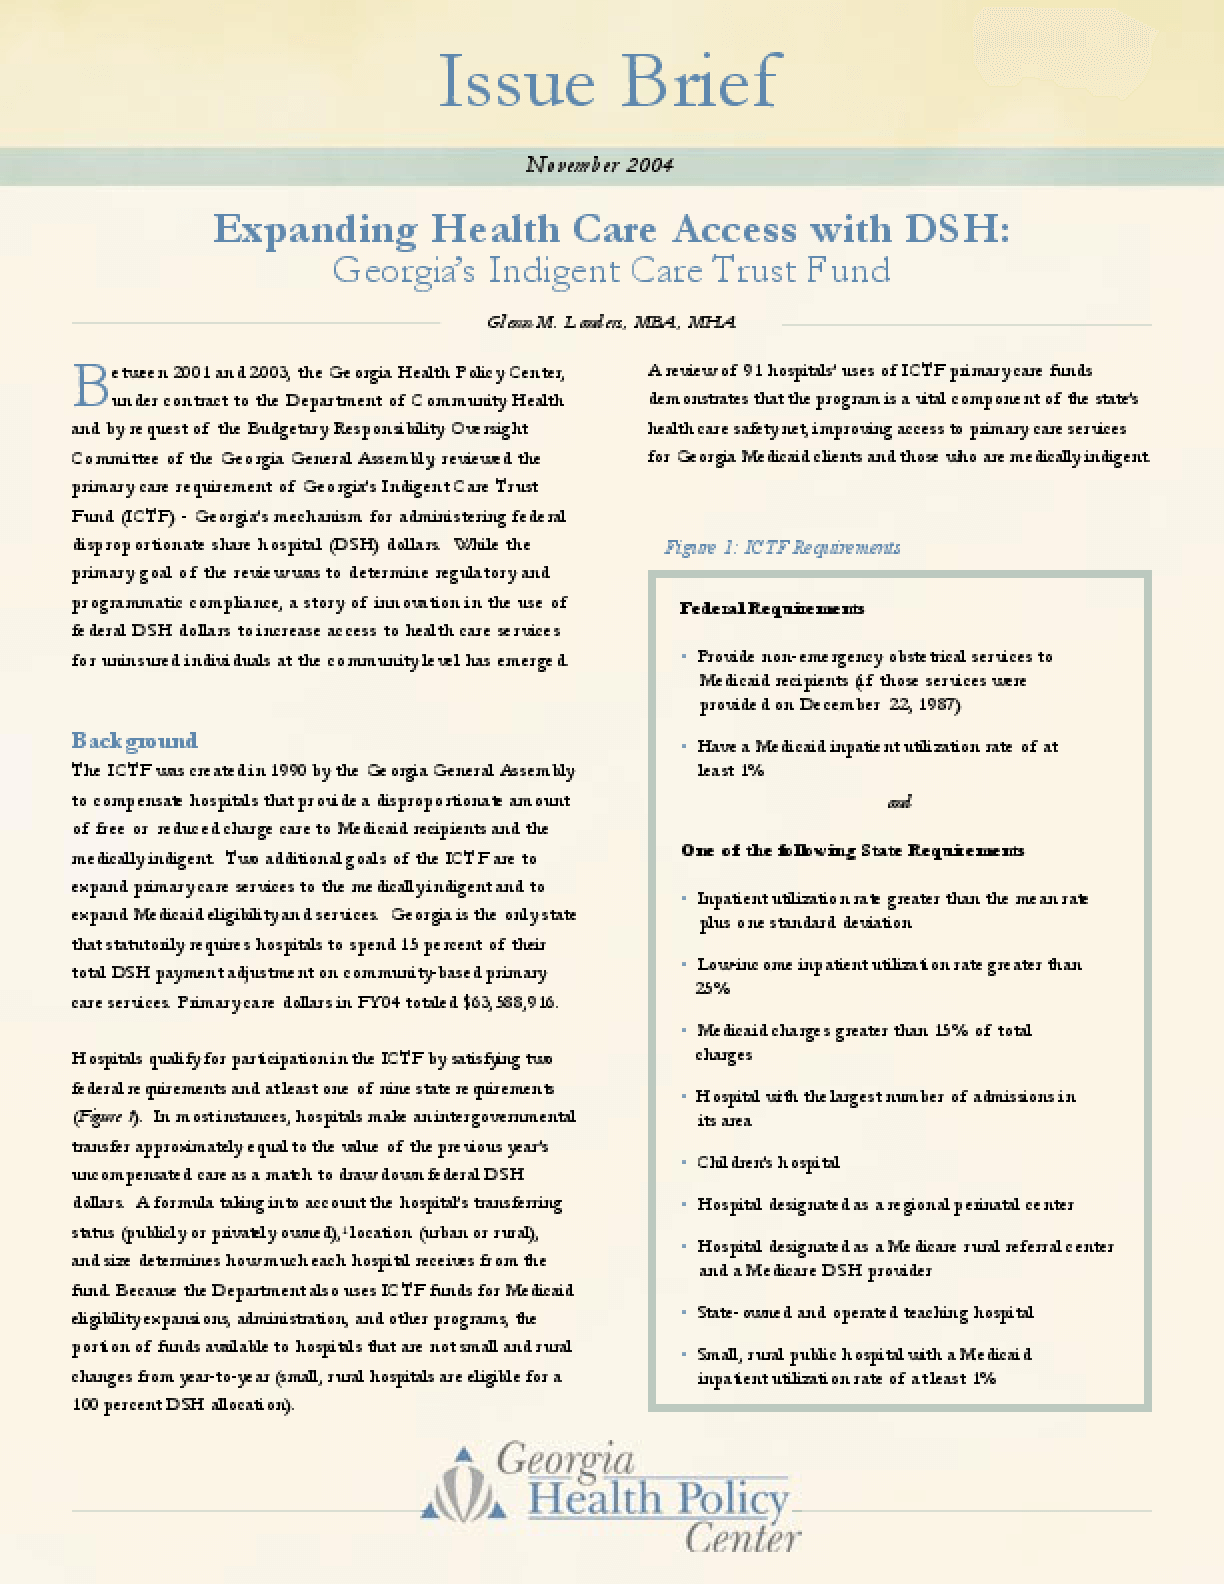 Expanding Health Care Access with DSH: Georgia's Indigent Care Trust Fund